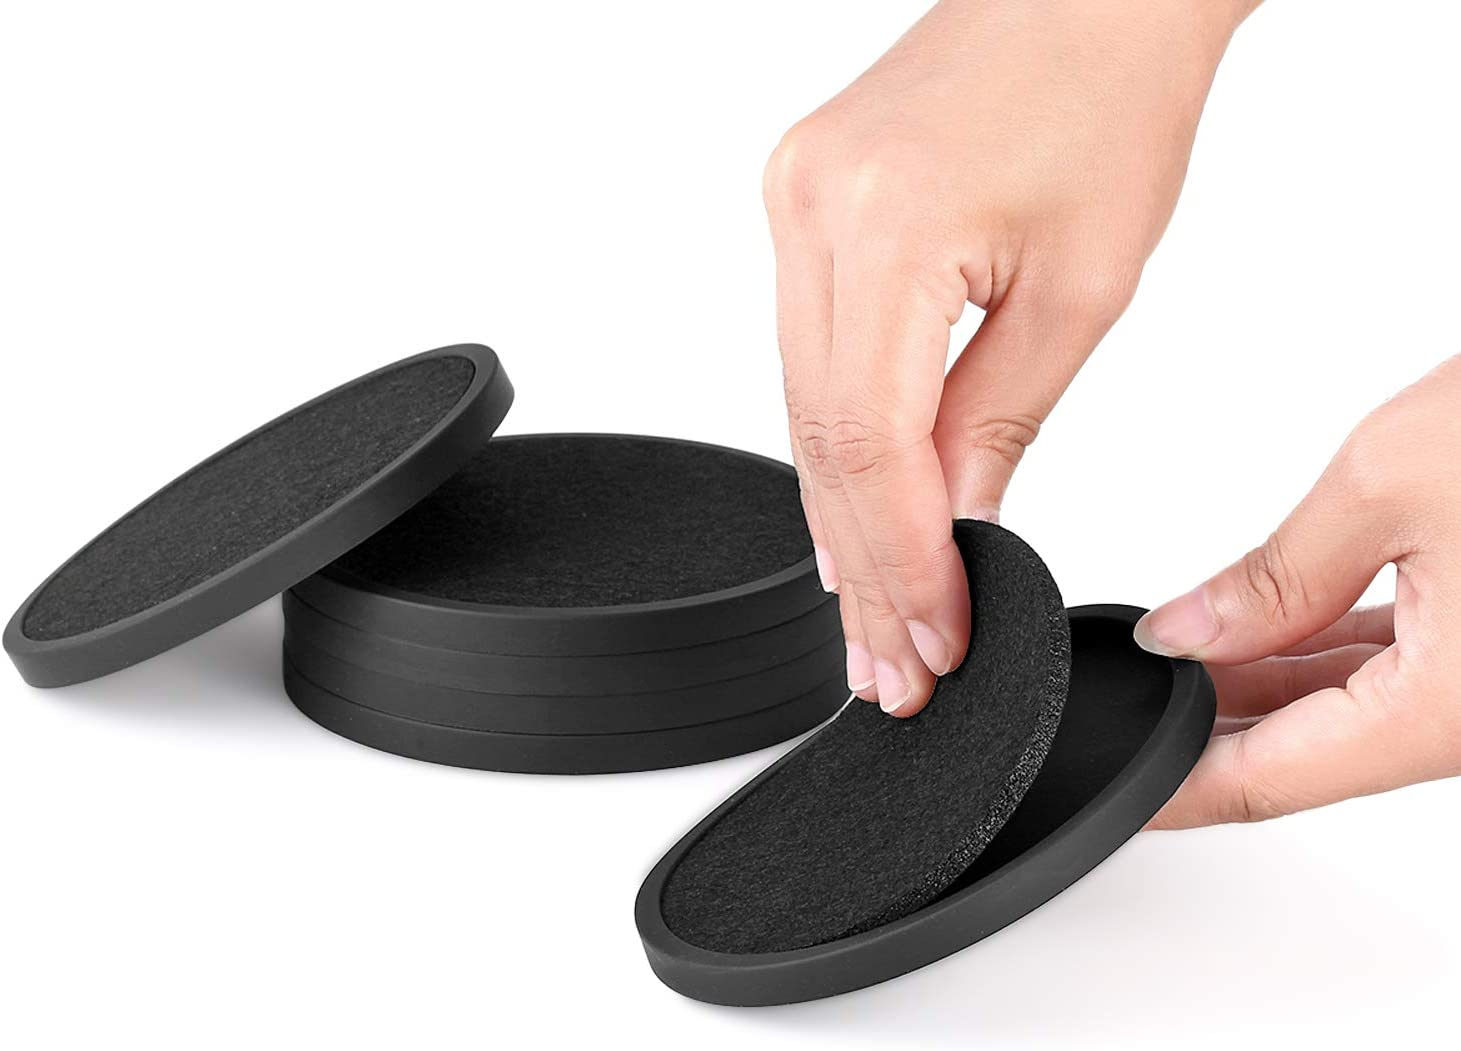 Silicone Drink Coasters with Absorbent Max 76% OFF Felt Arlington Mall Soft Insert 6Packs -